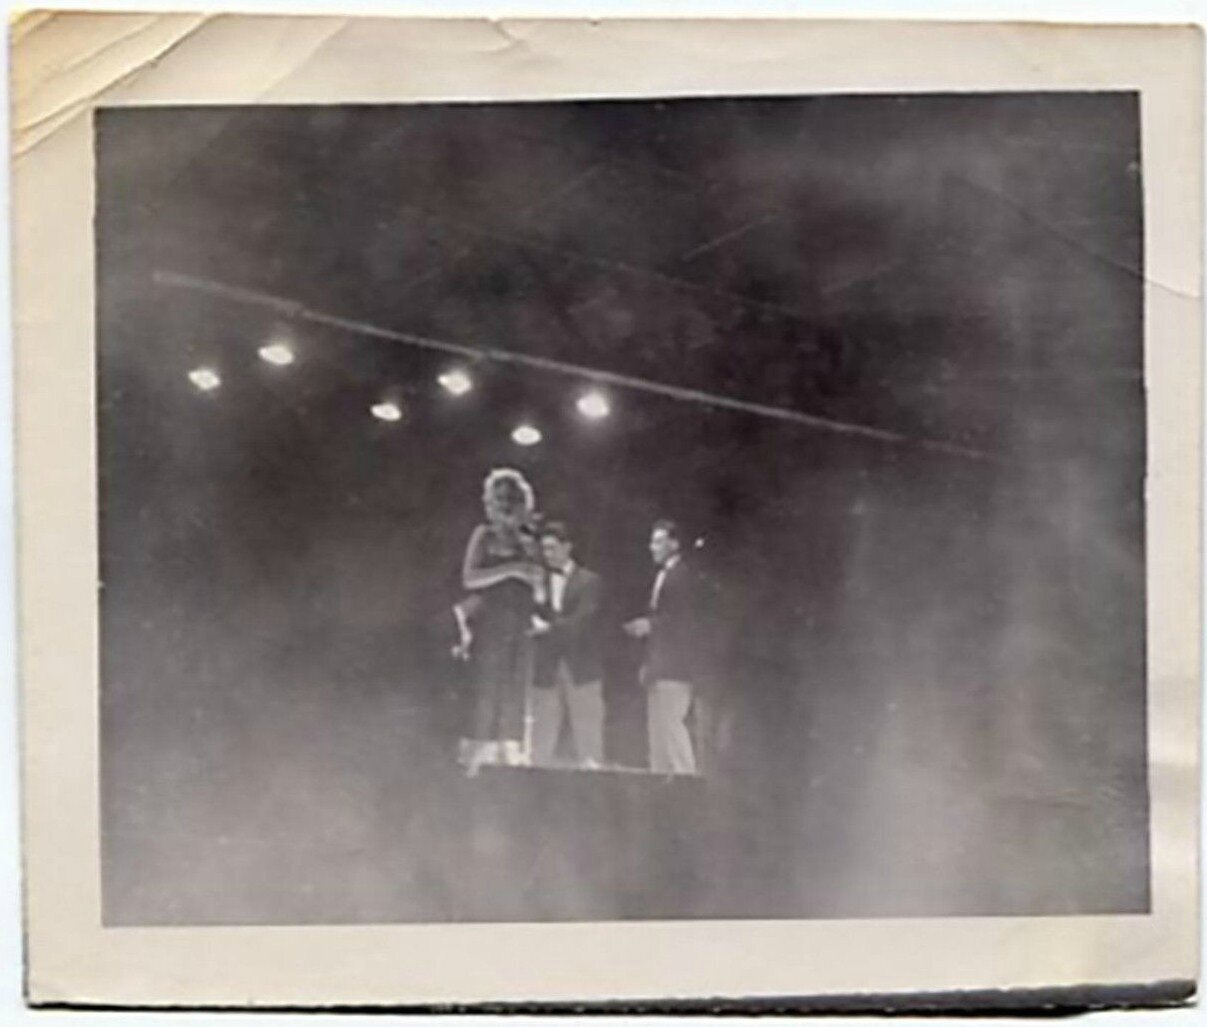 1954-02-17-korea-25thMarineDivision-stage_in-022-1